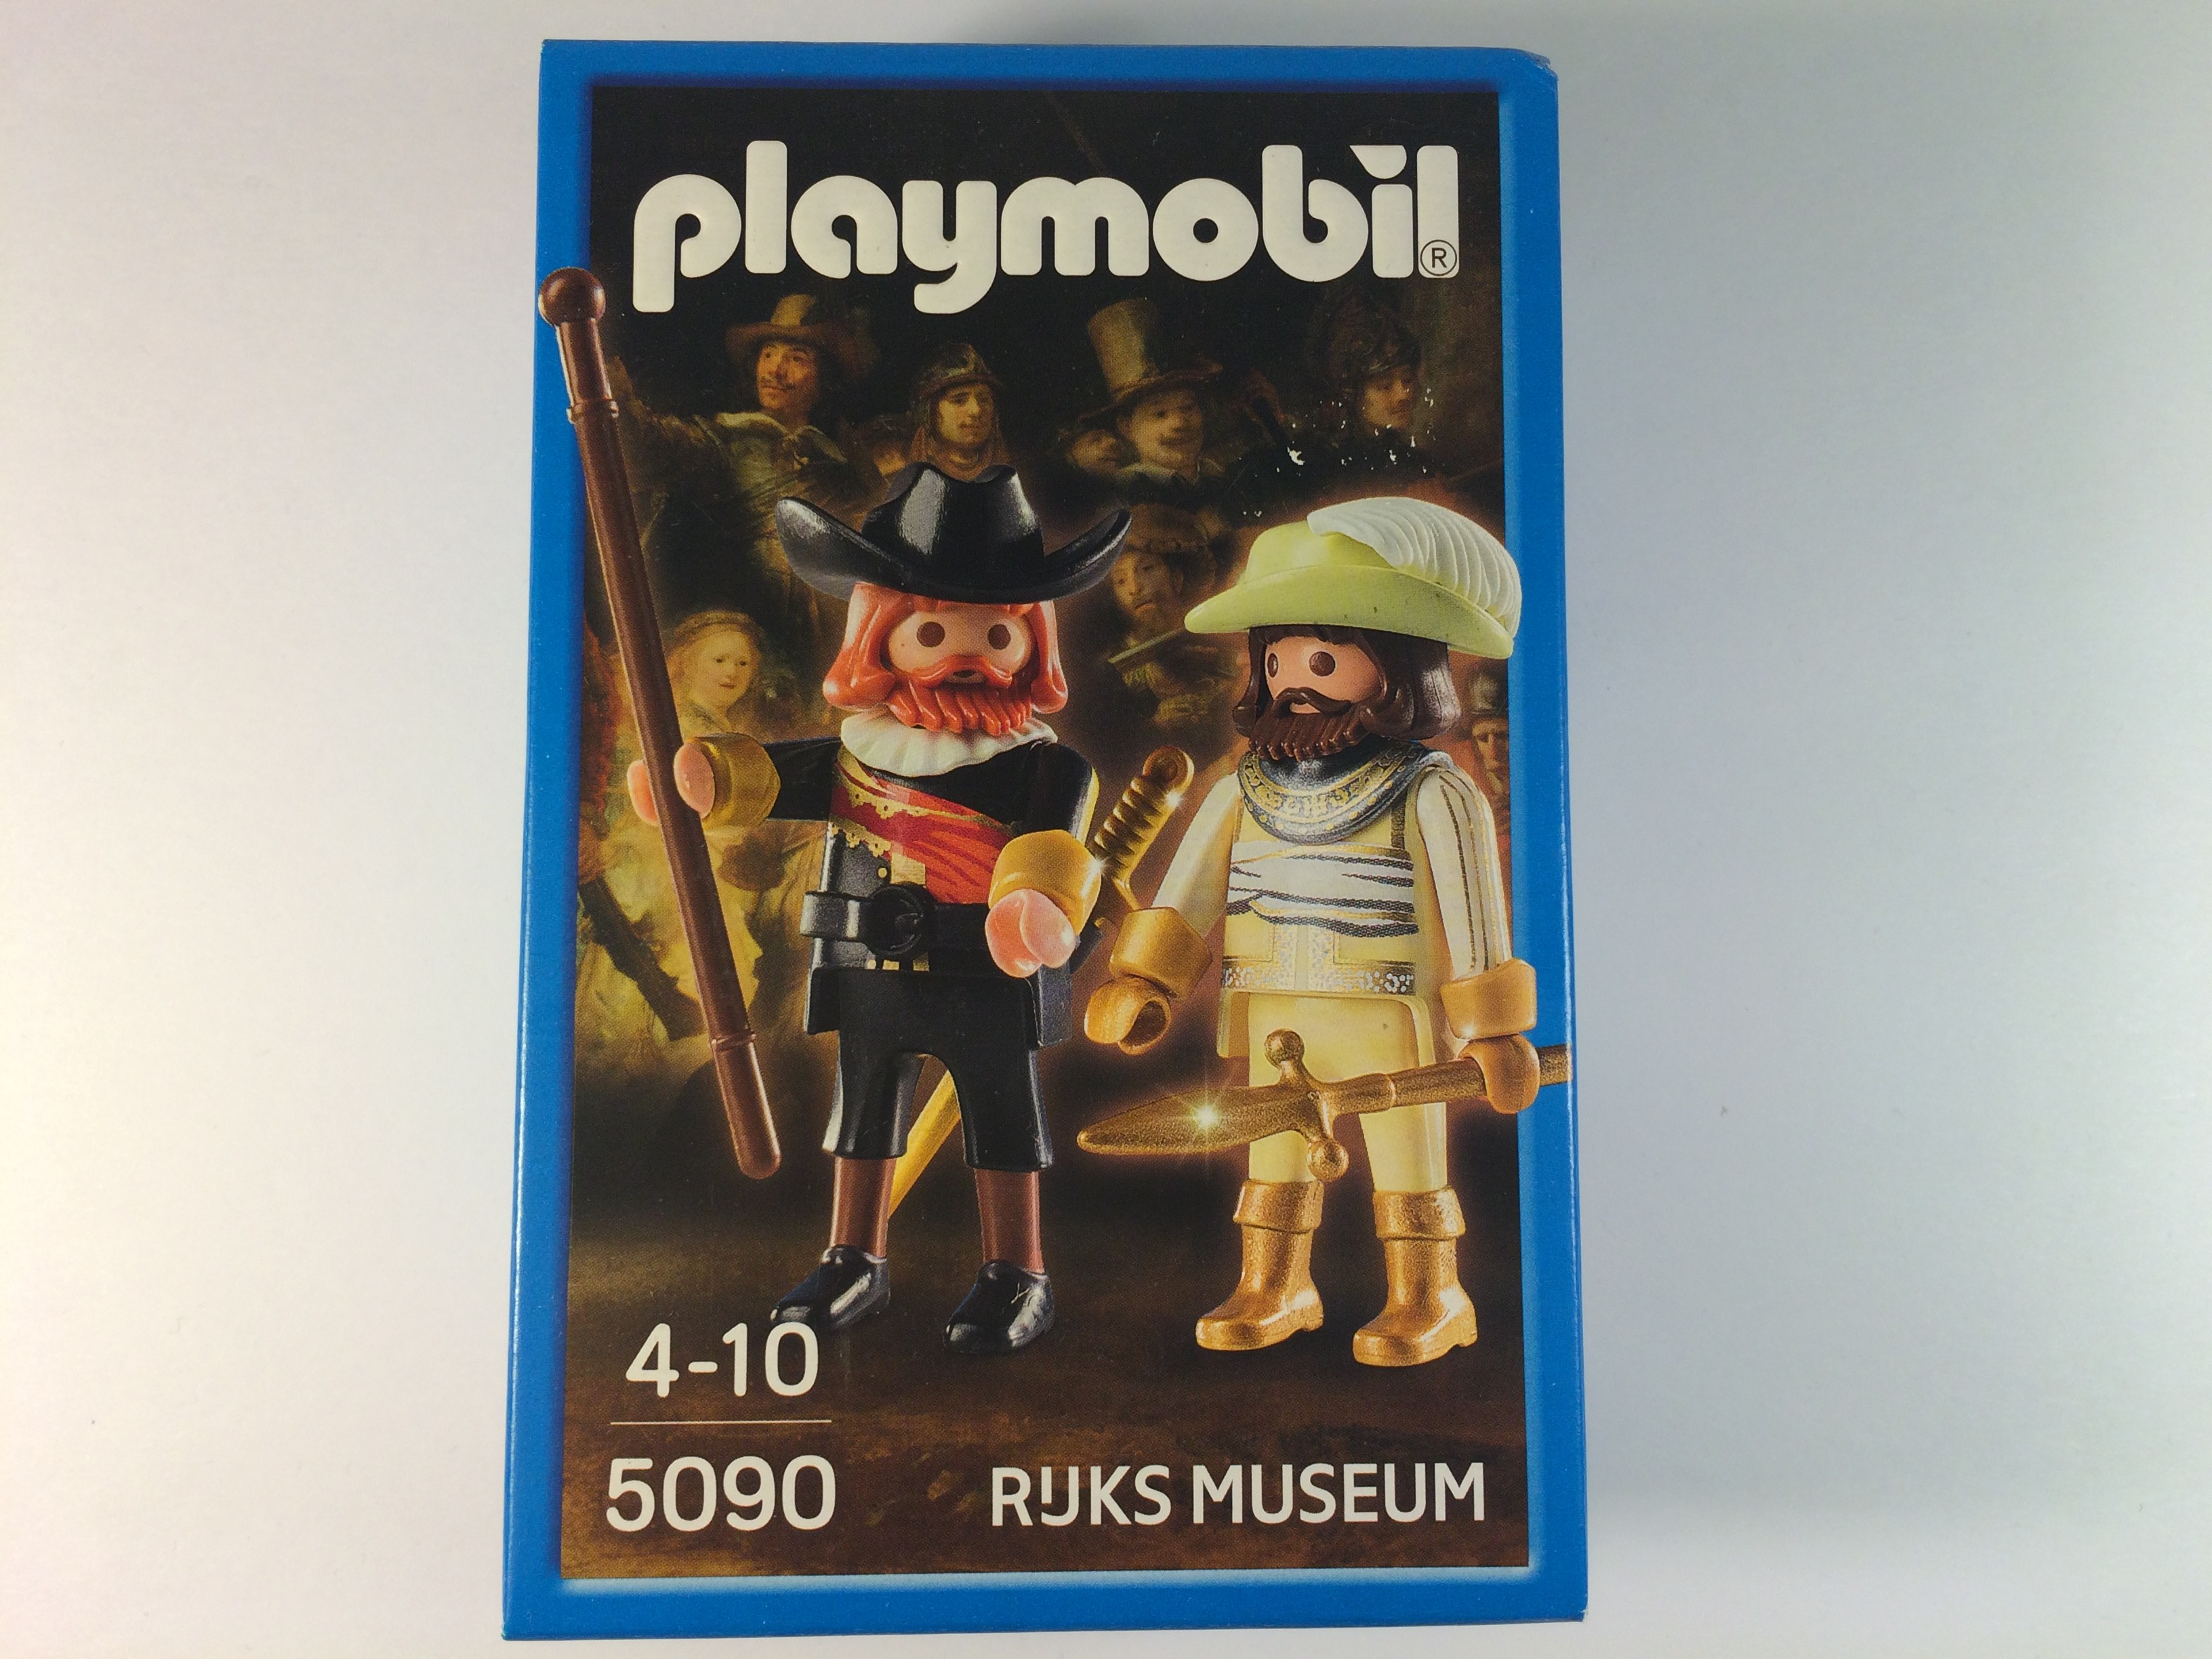 Playmobil 5090 The Night Watch Rembrandt